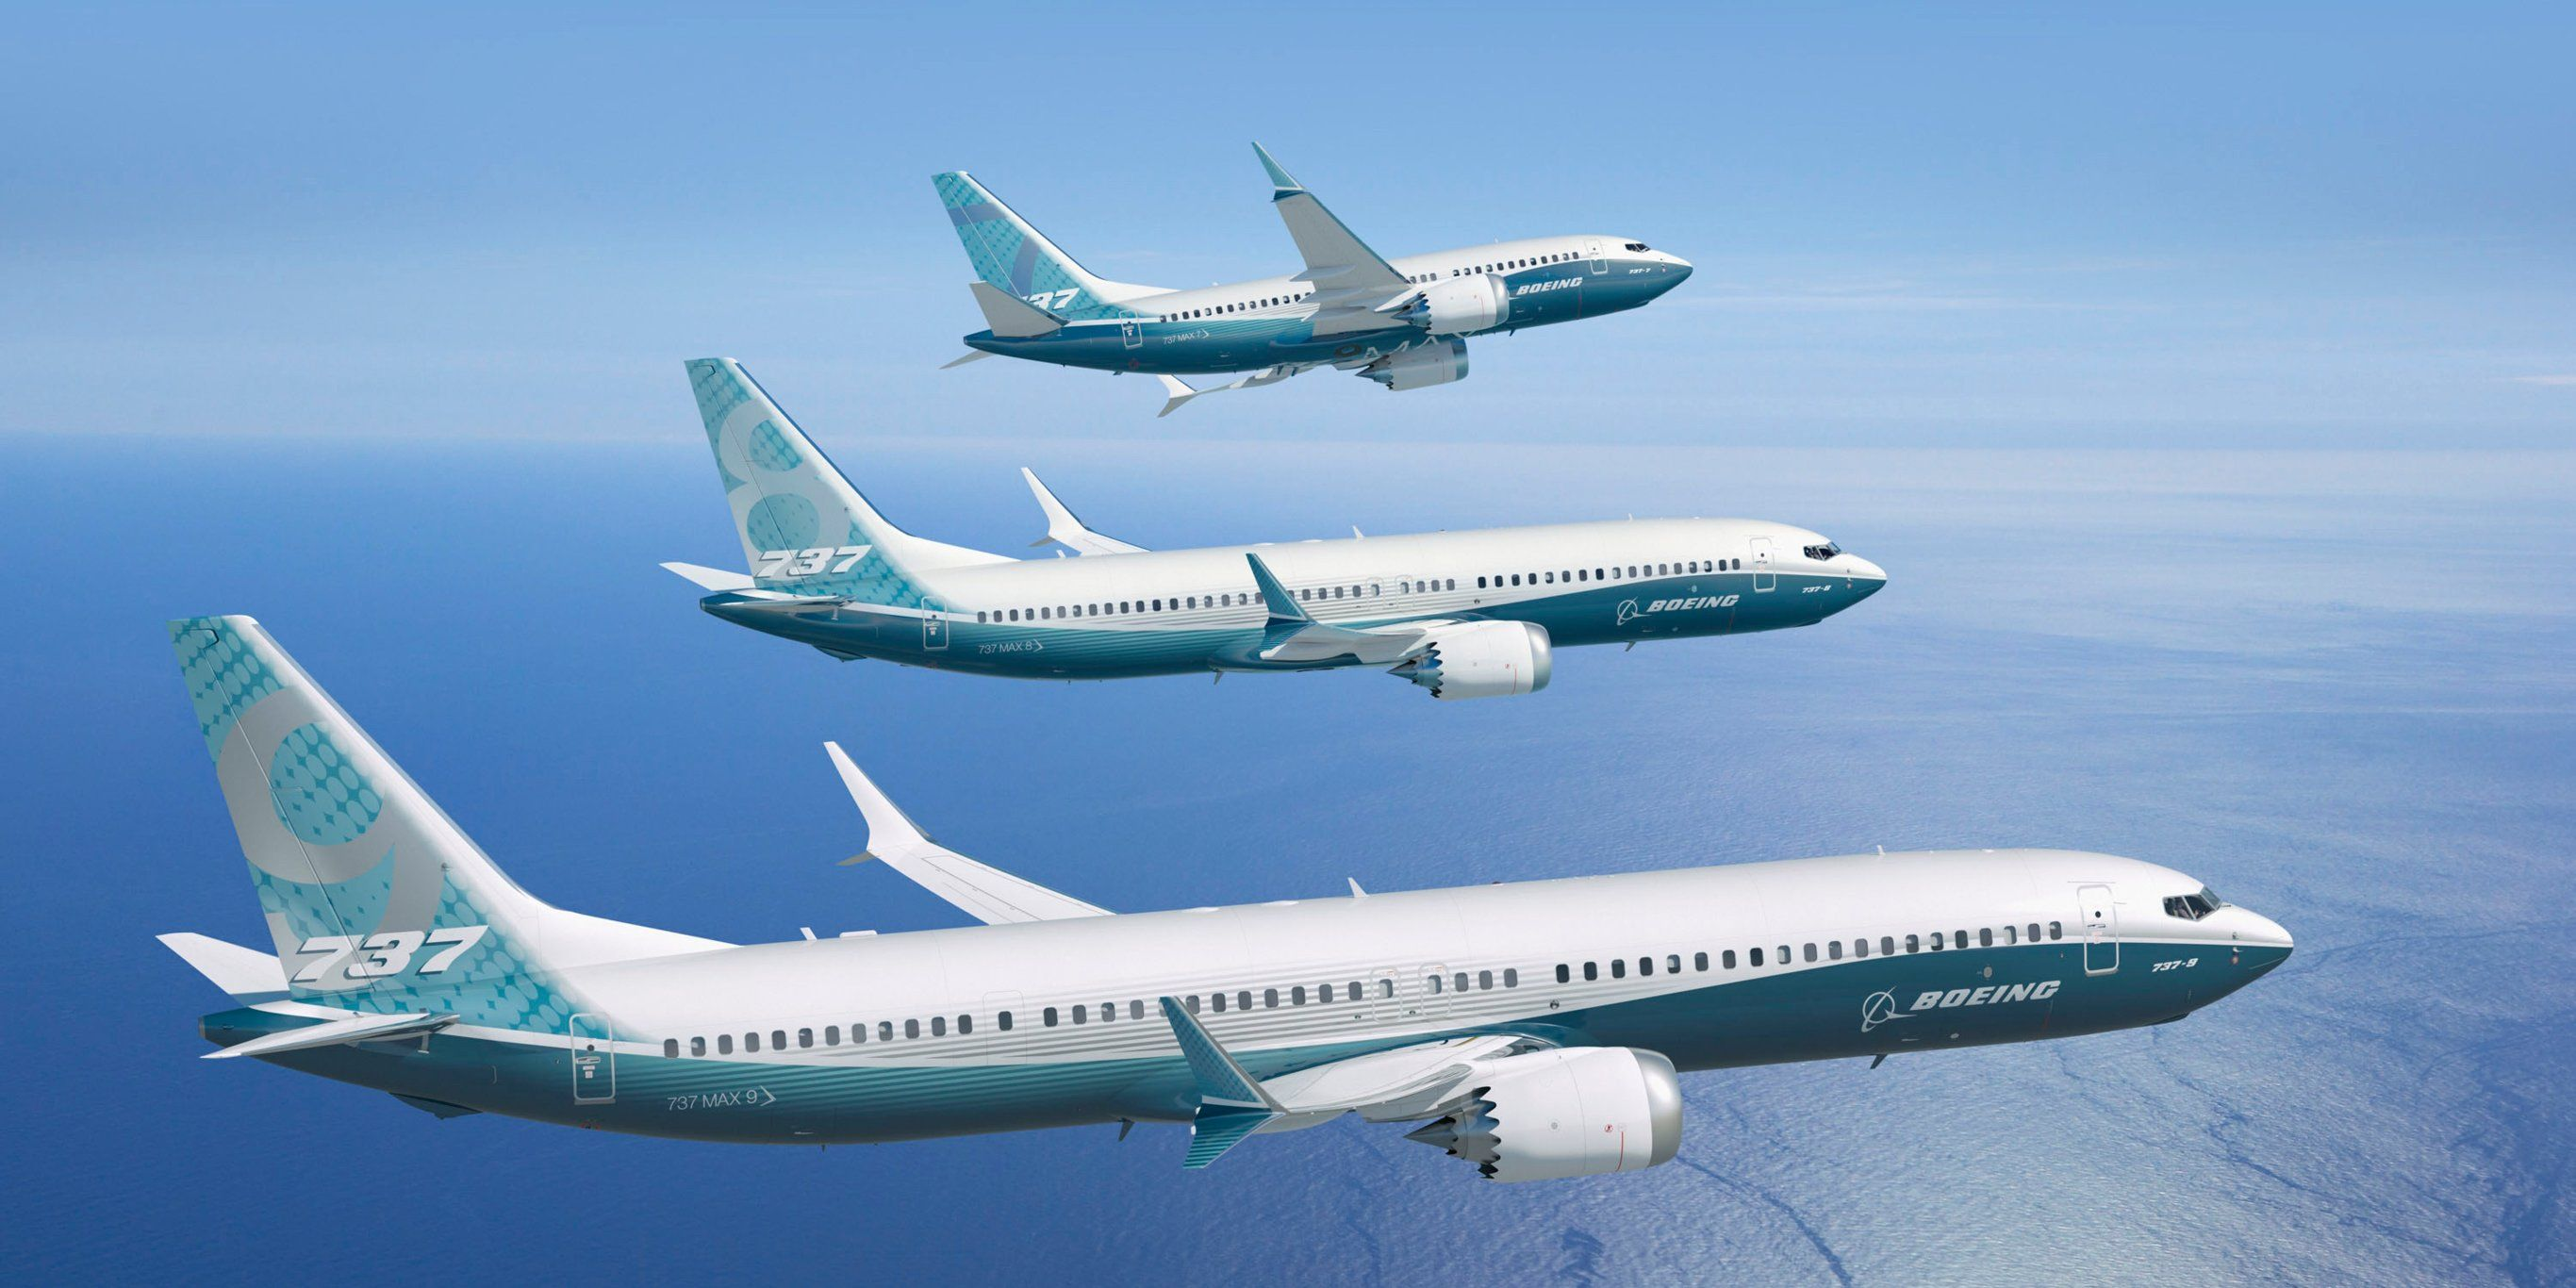 Boeing is going to update the control software on the 737